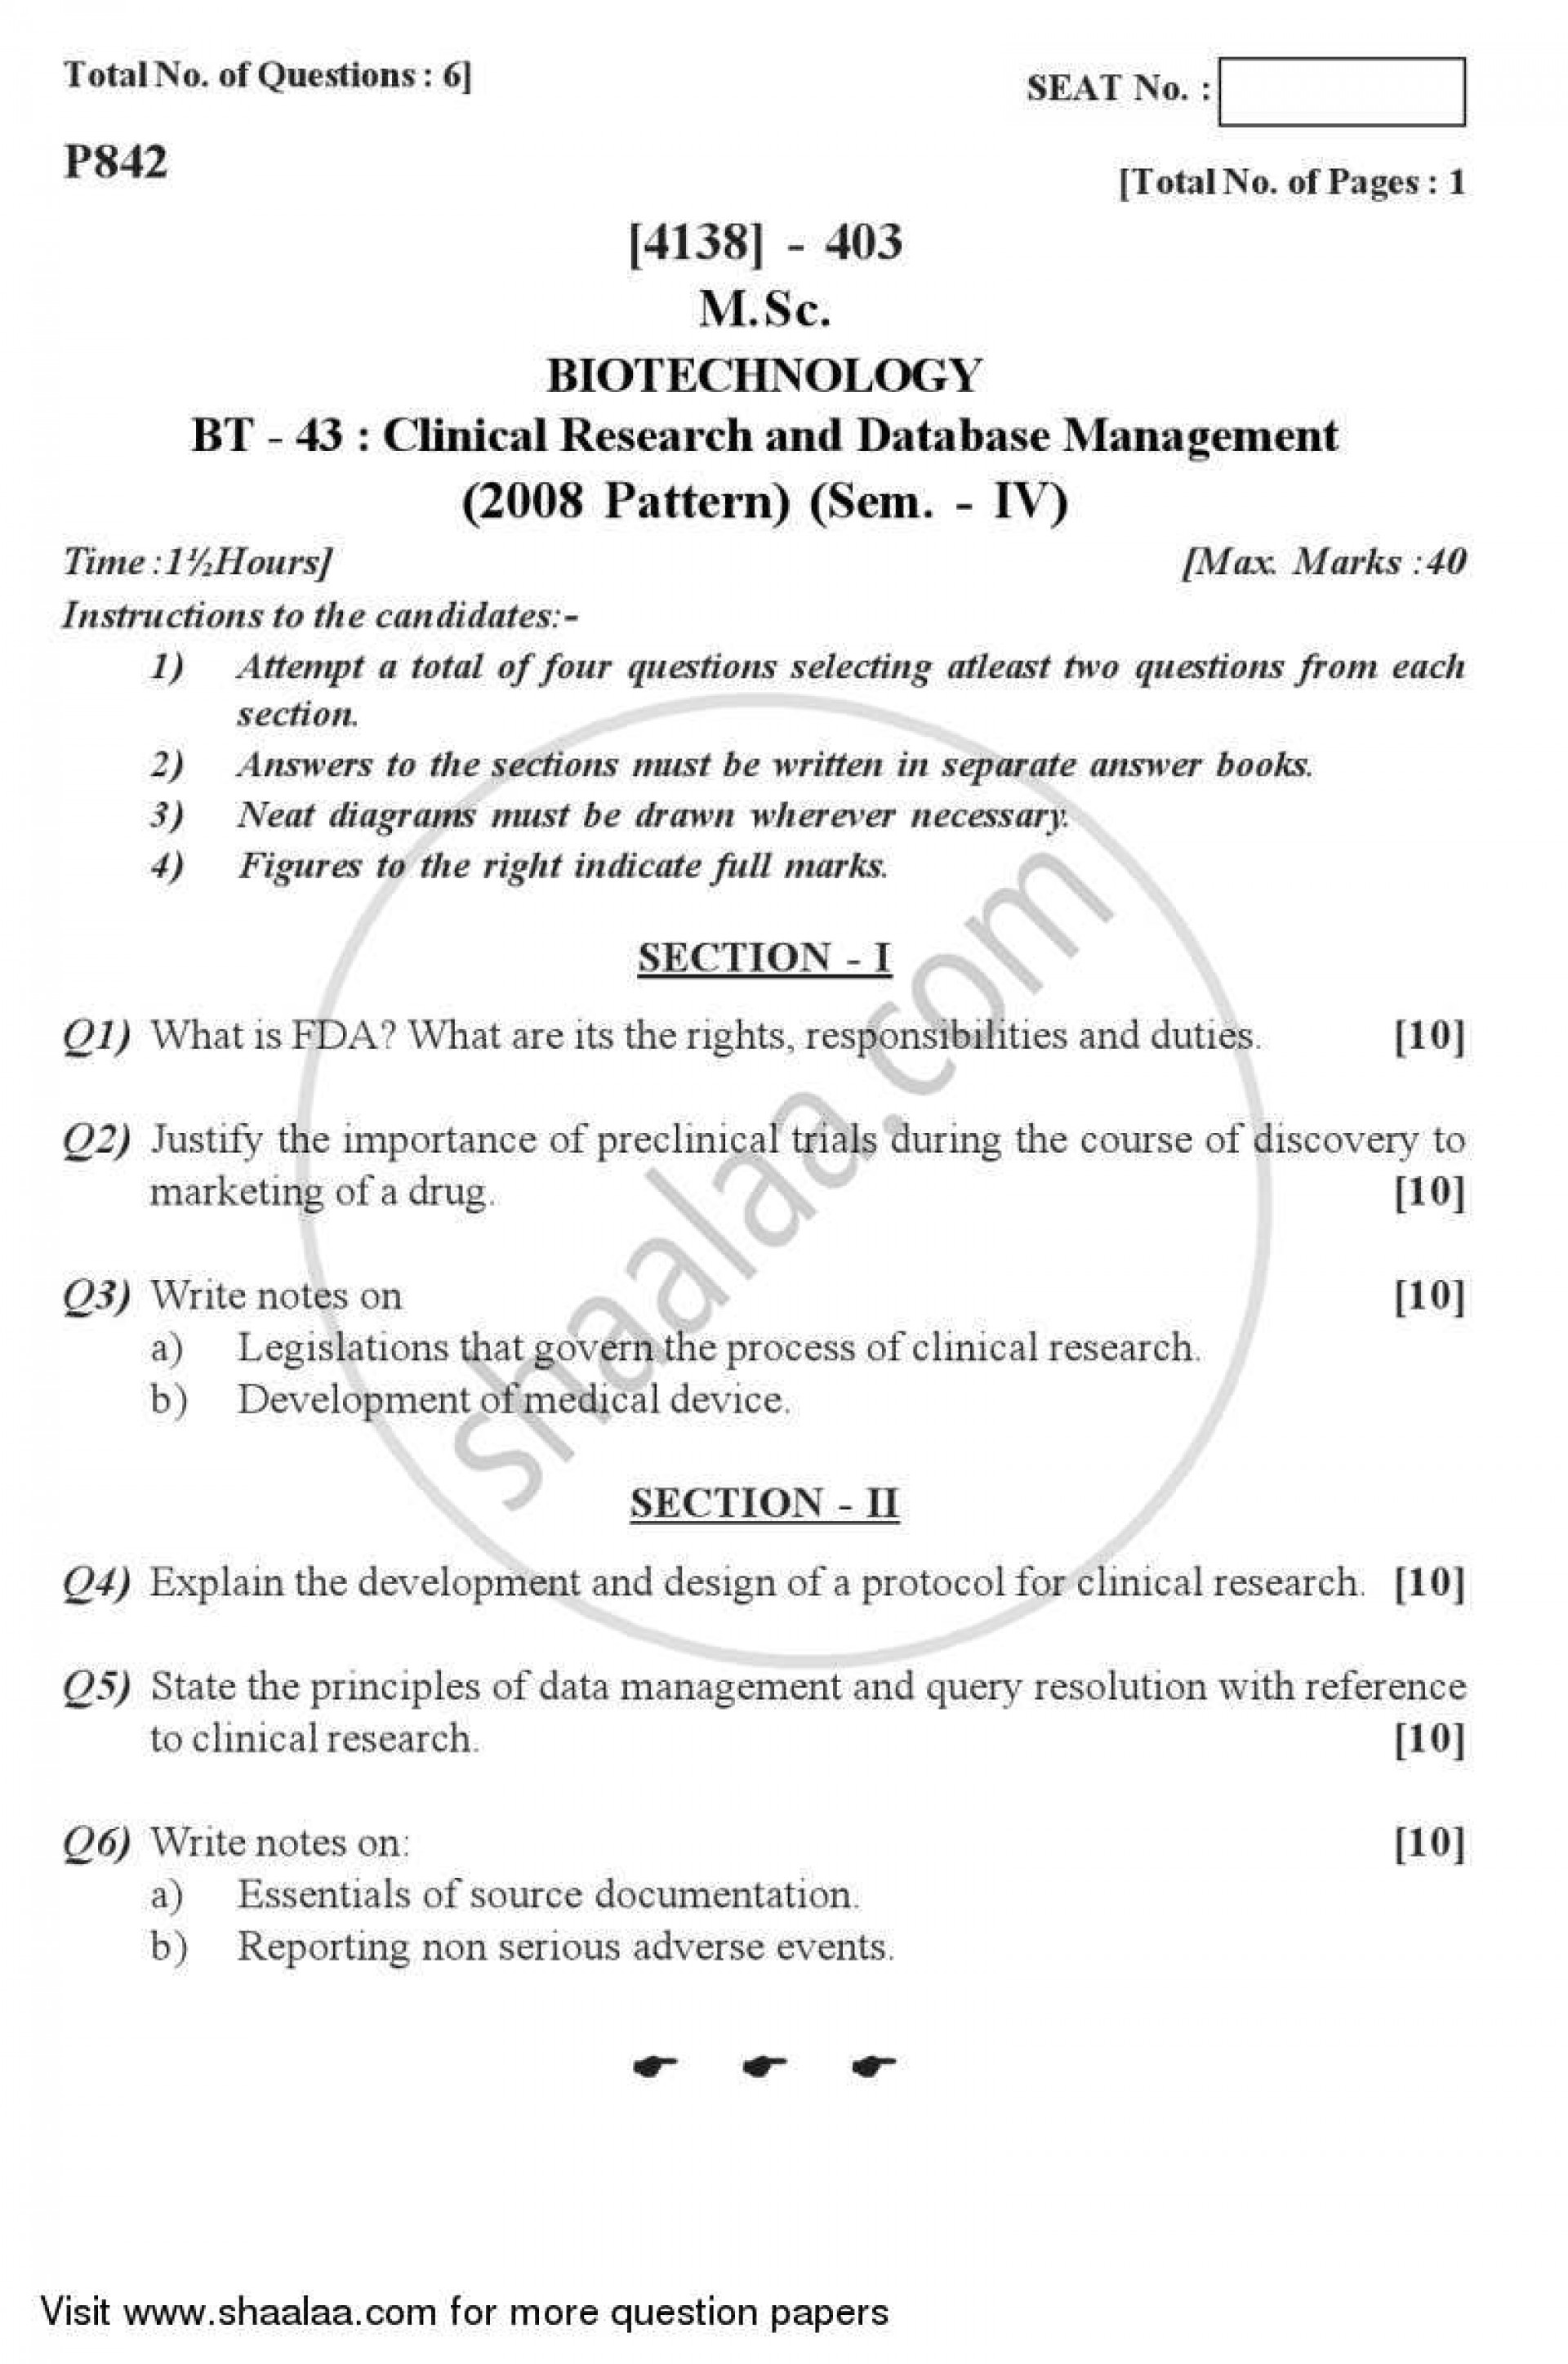 020 University Of Pune Master Msc Clinical Research Database Management Biotech Semester 2012 25b9c0e3f87cb432992c22355b1608732 Phenomenal Paper Graph Distributed Papers Security - Draft 1920